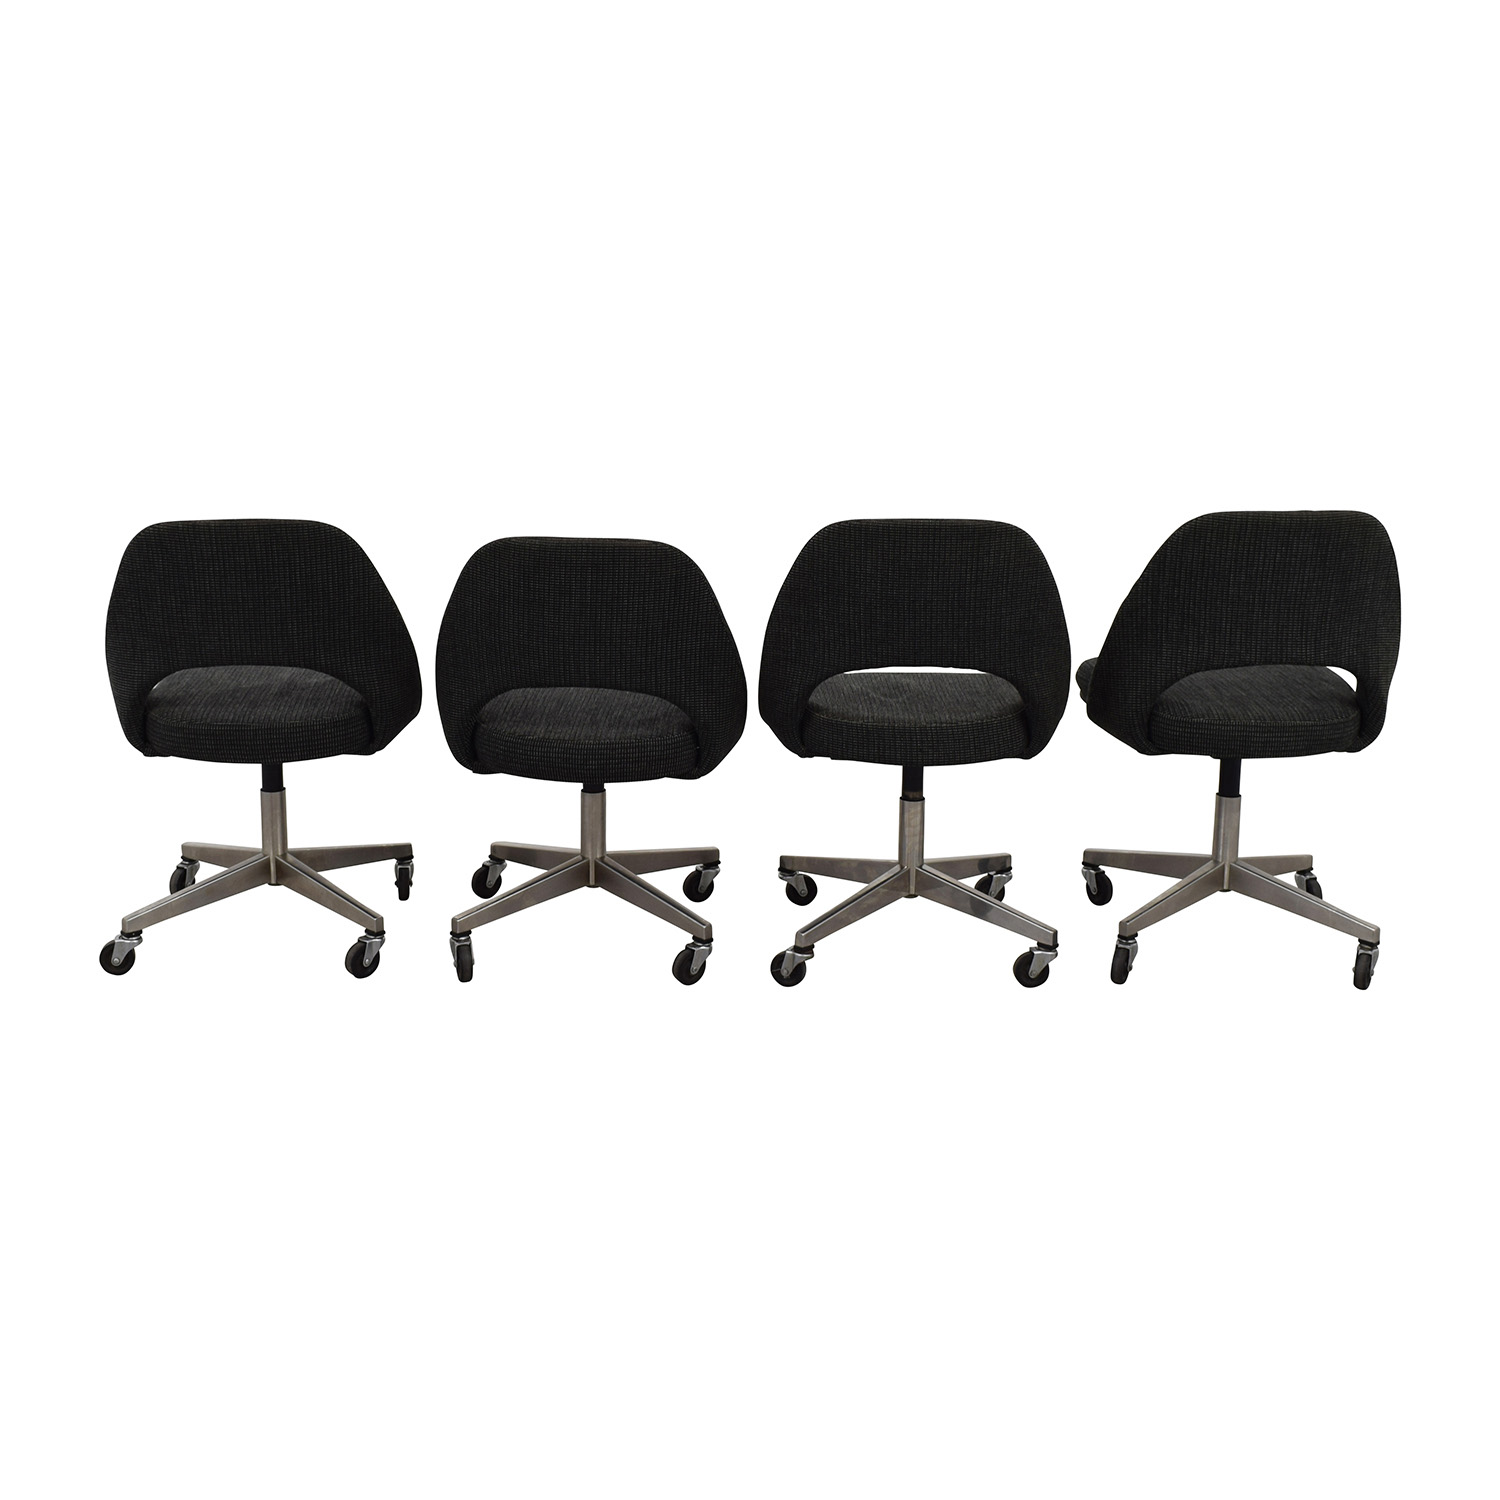 Saarinen Saarinen Executive Chairs Home Office Chairs